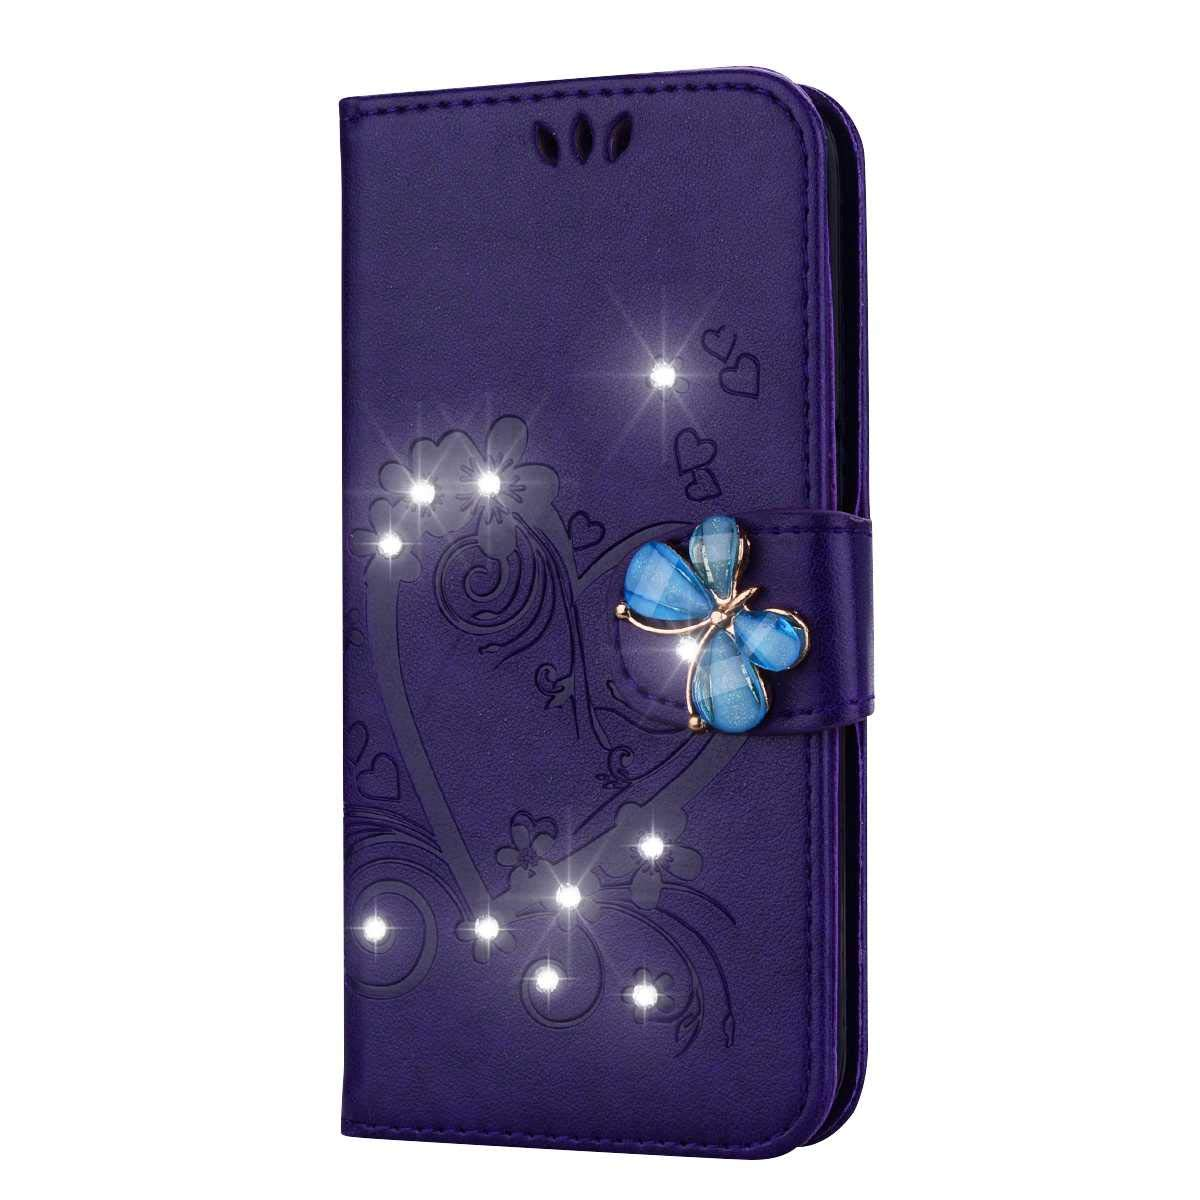 Bear Village Case Compatible with Huawei Mate 20 Lite, Leather Full Body Protective Cover with Credit Card Slot, Magnetic Closure and Kickstand Function, Purple by Bear Village